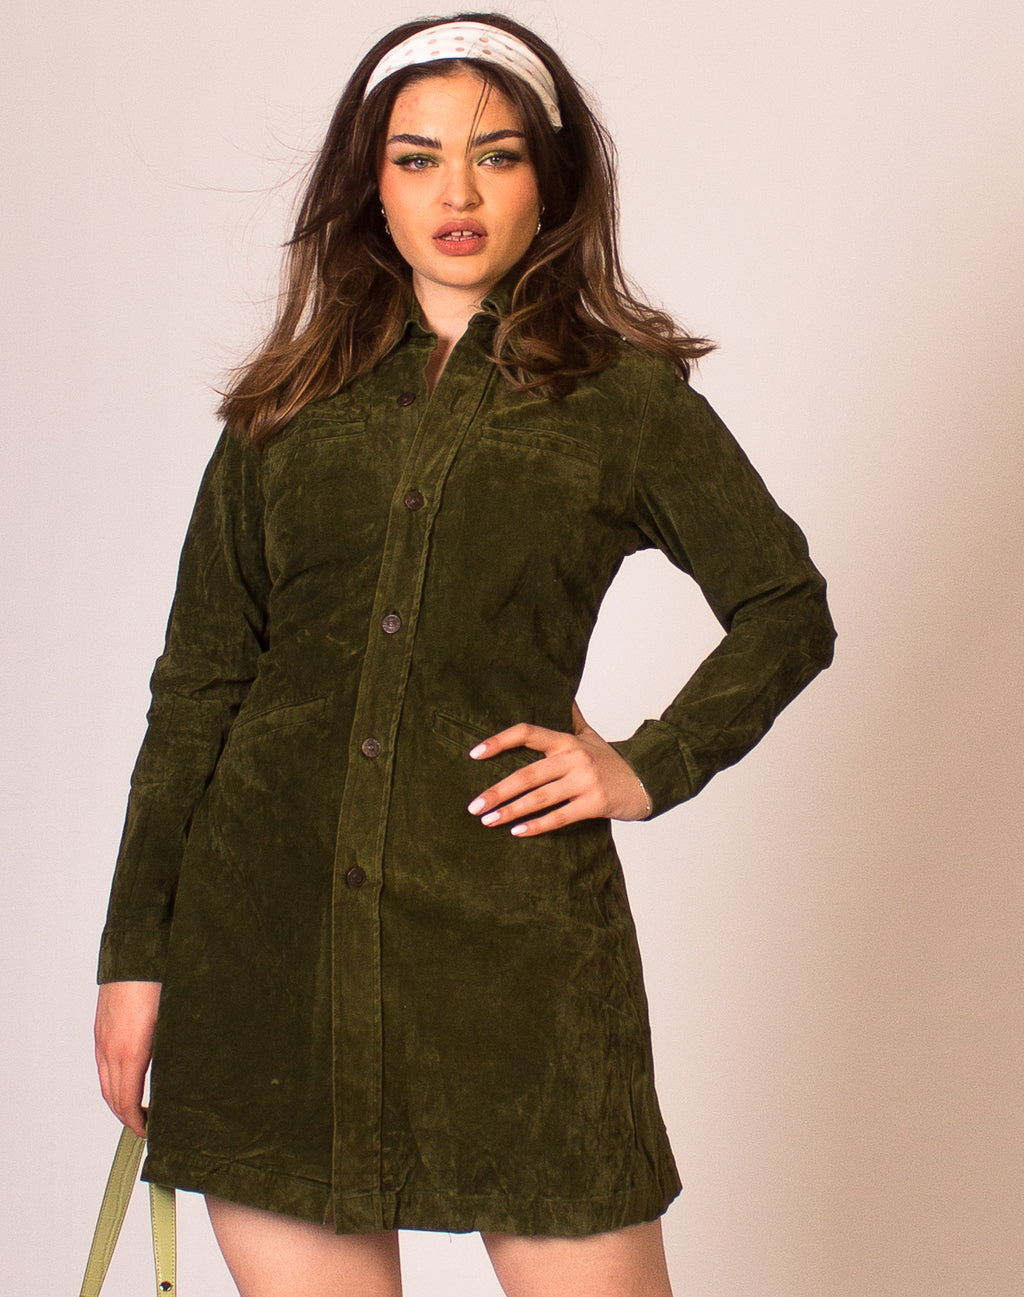 LEVIS OLIVE SUEDETTE DRESS